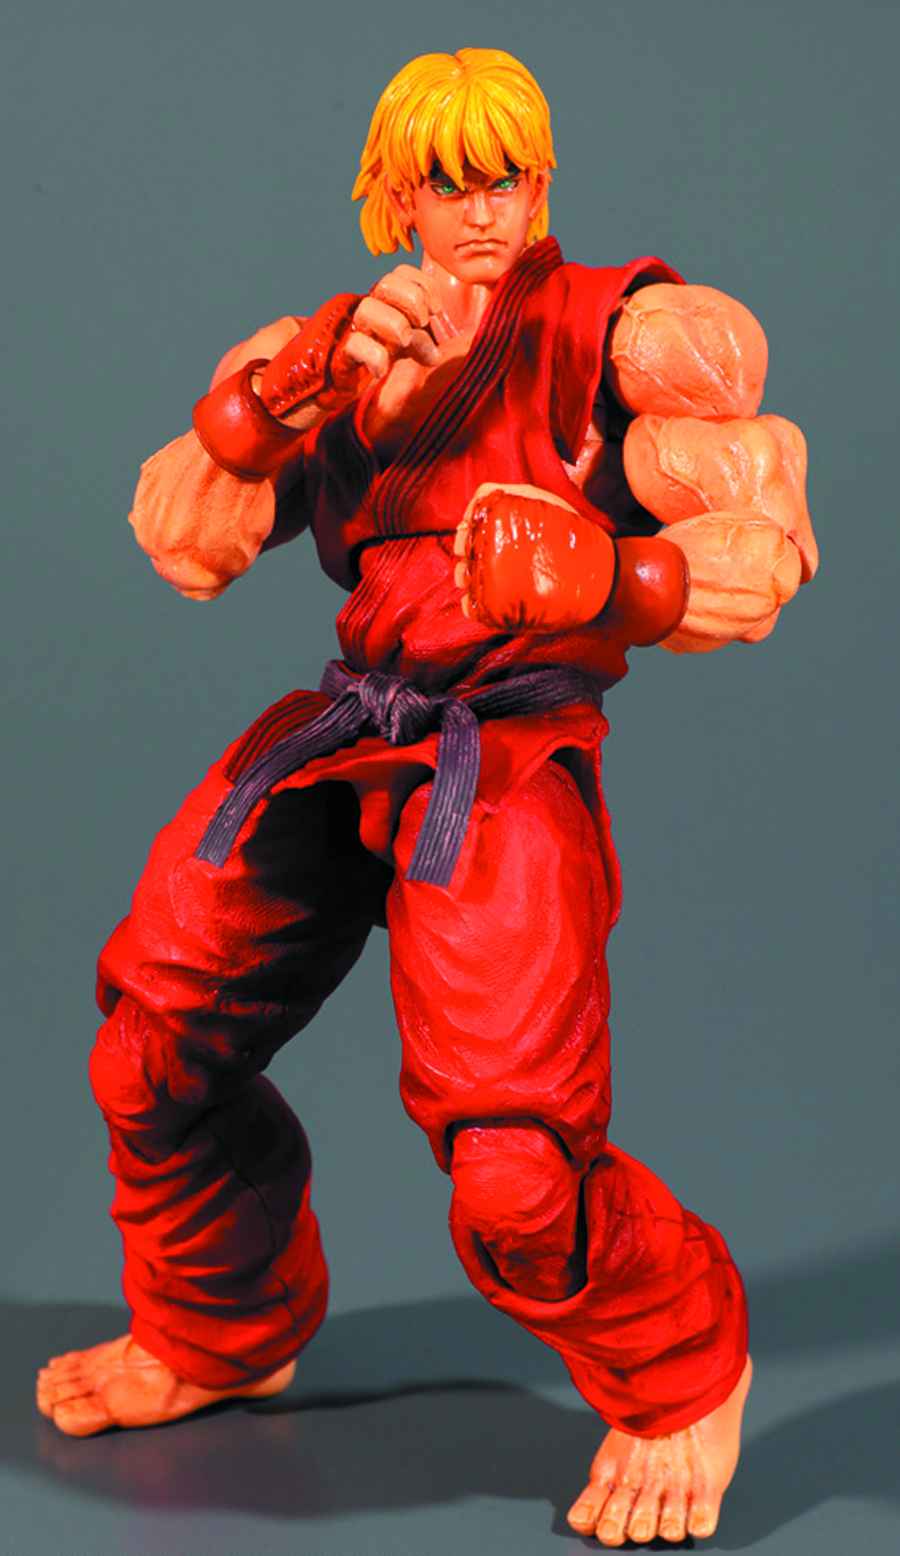 SUPER STREET FIGHTER IV PLAY ARTS KAI KEN AF